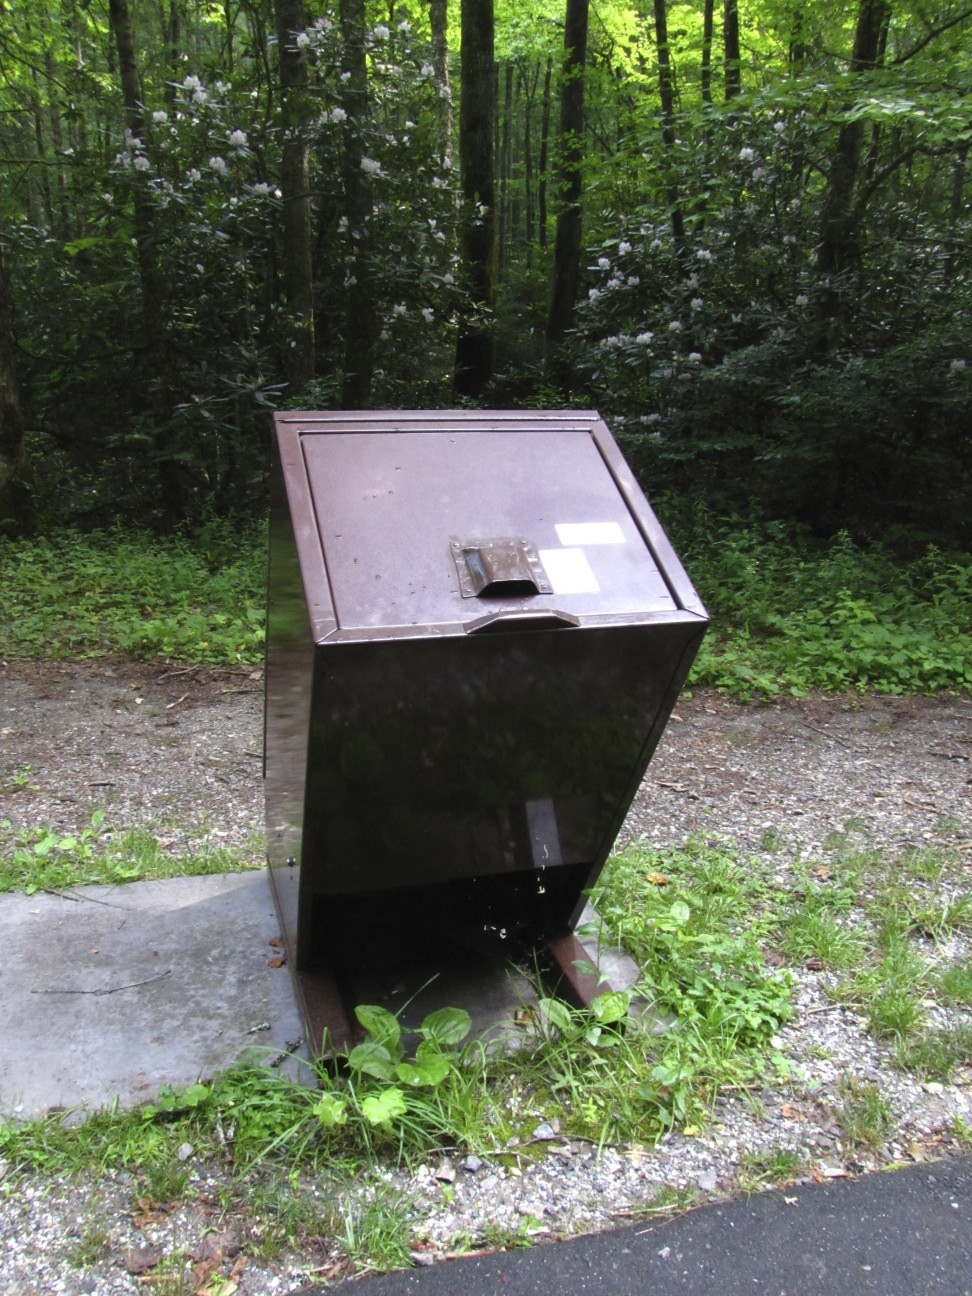 bear-proof-trash-can-in-park_5932342898_oDonna L  Long